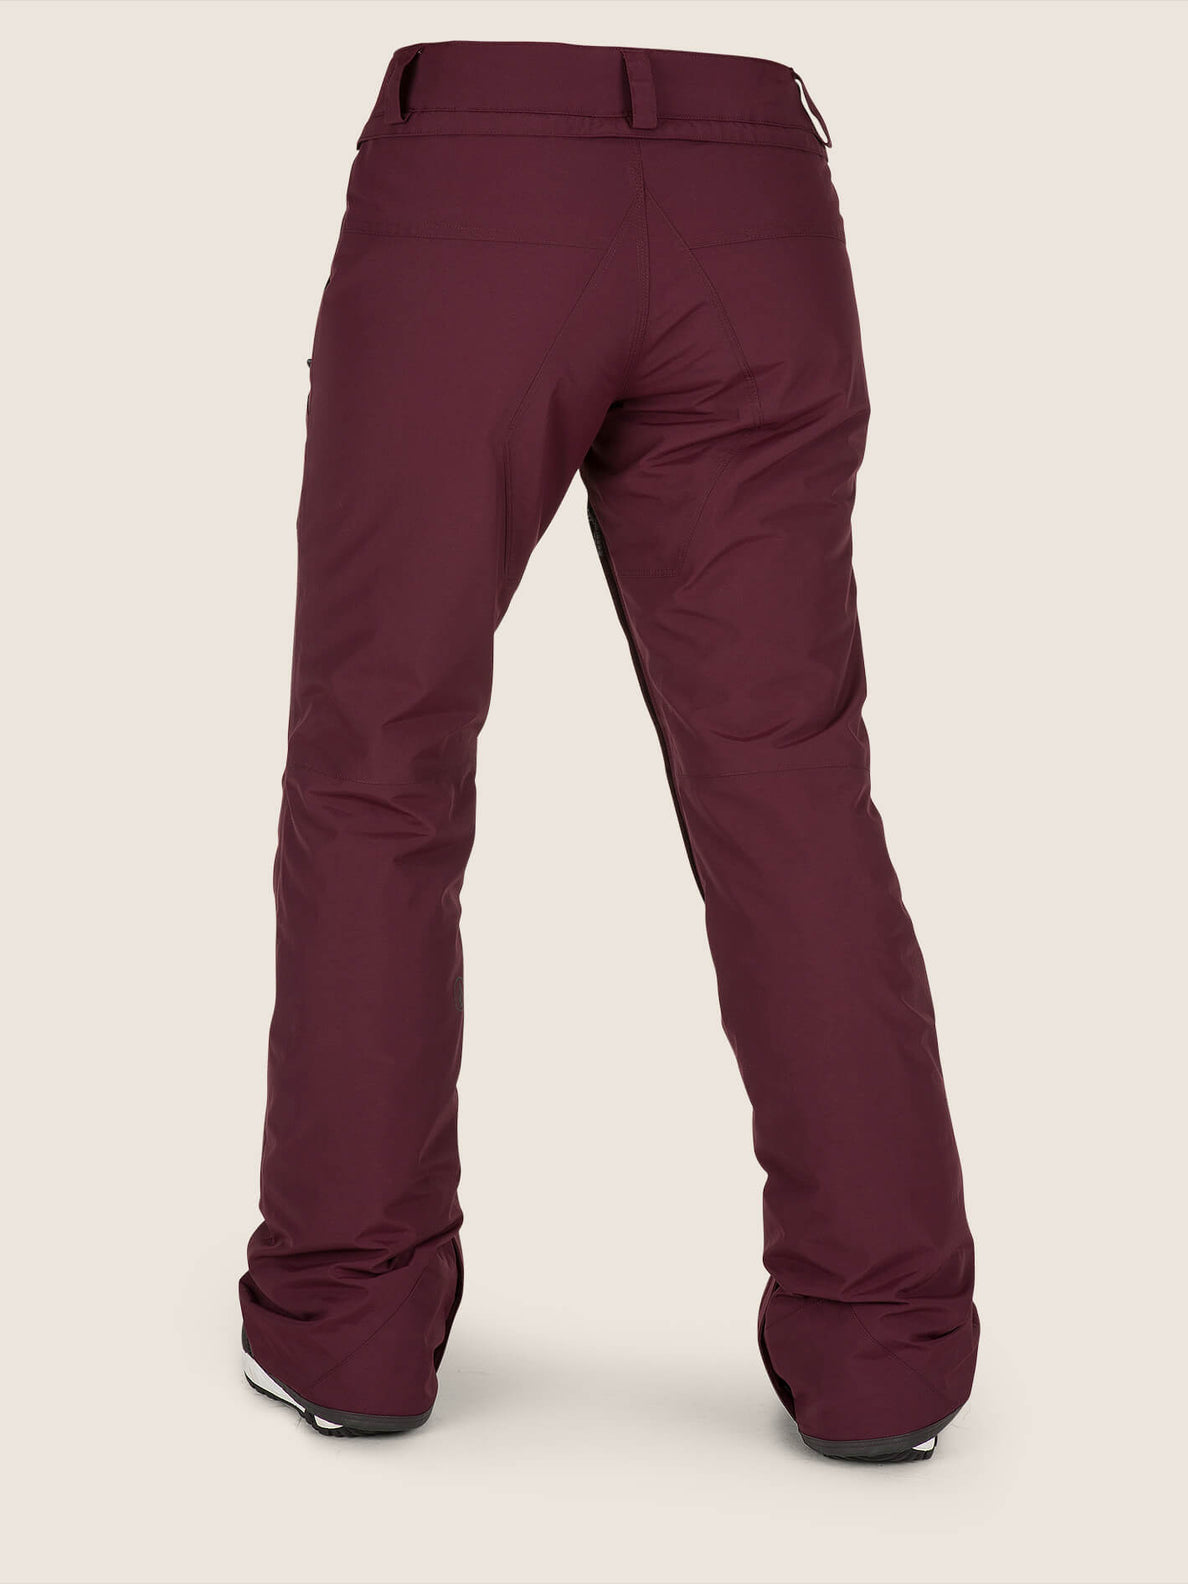 Knox Insulated Gore-tex Pant In Merlot, Back View